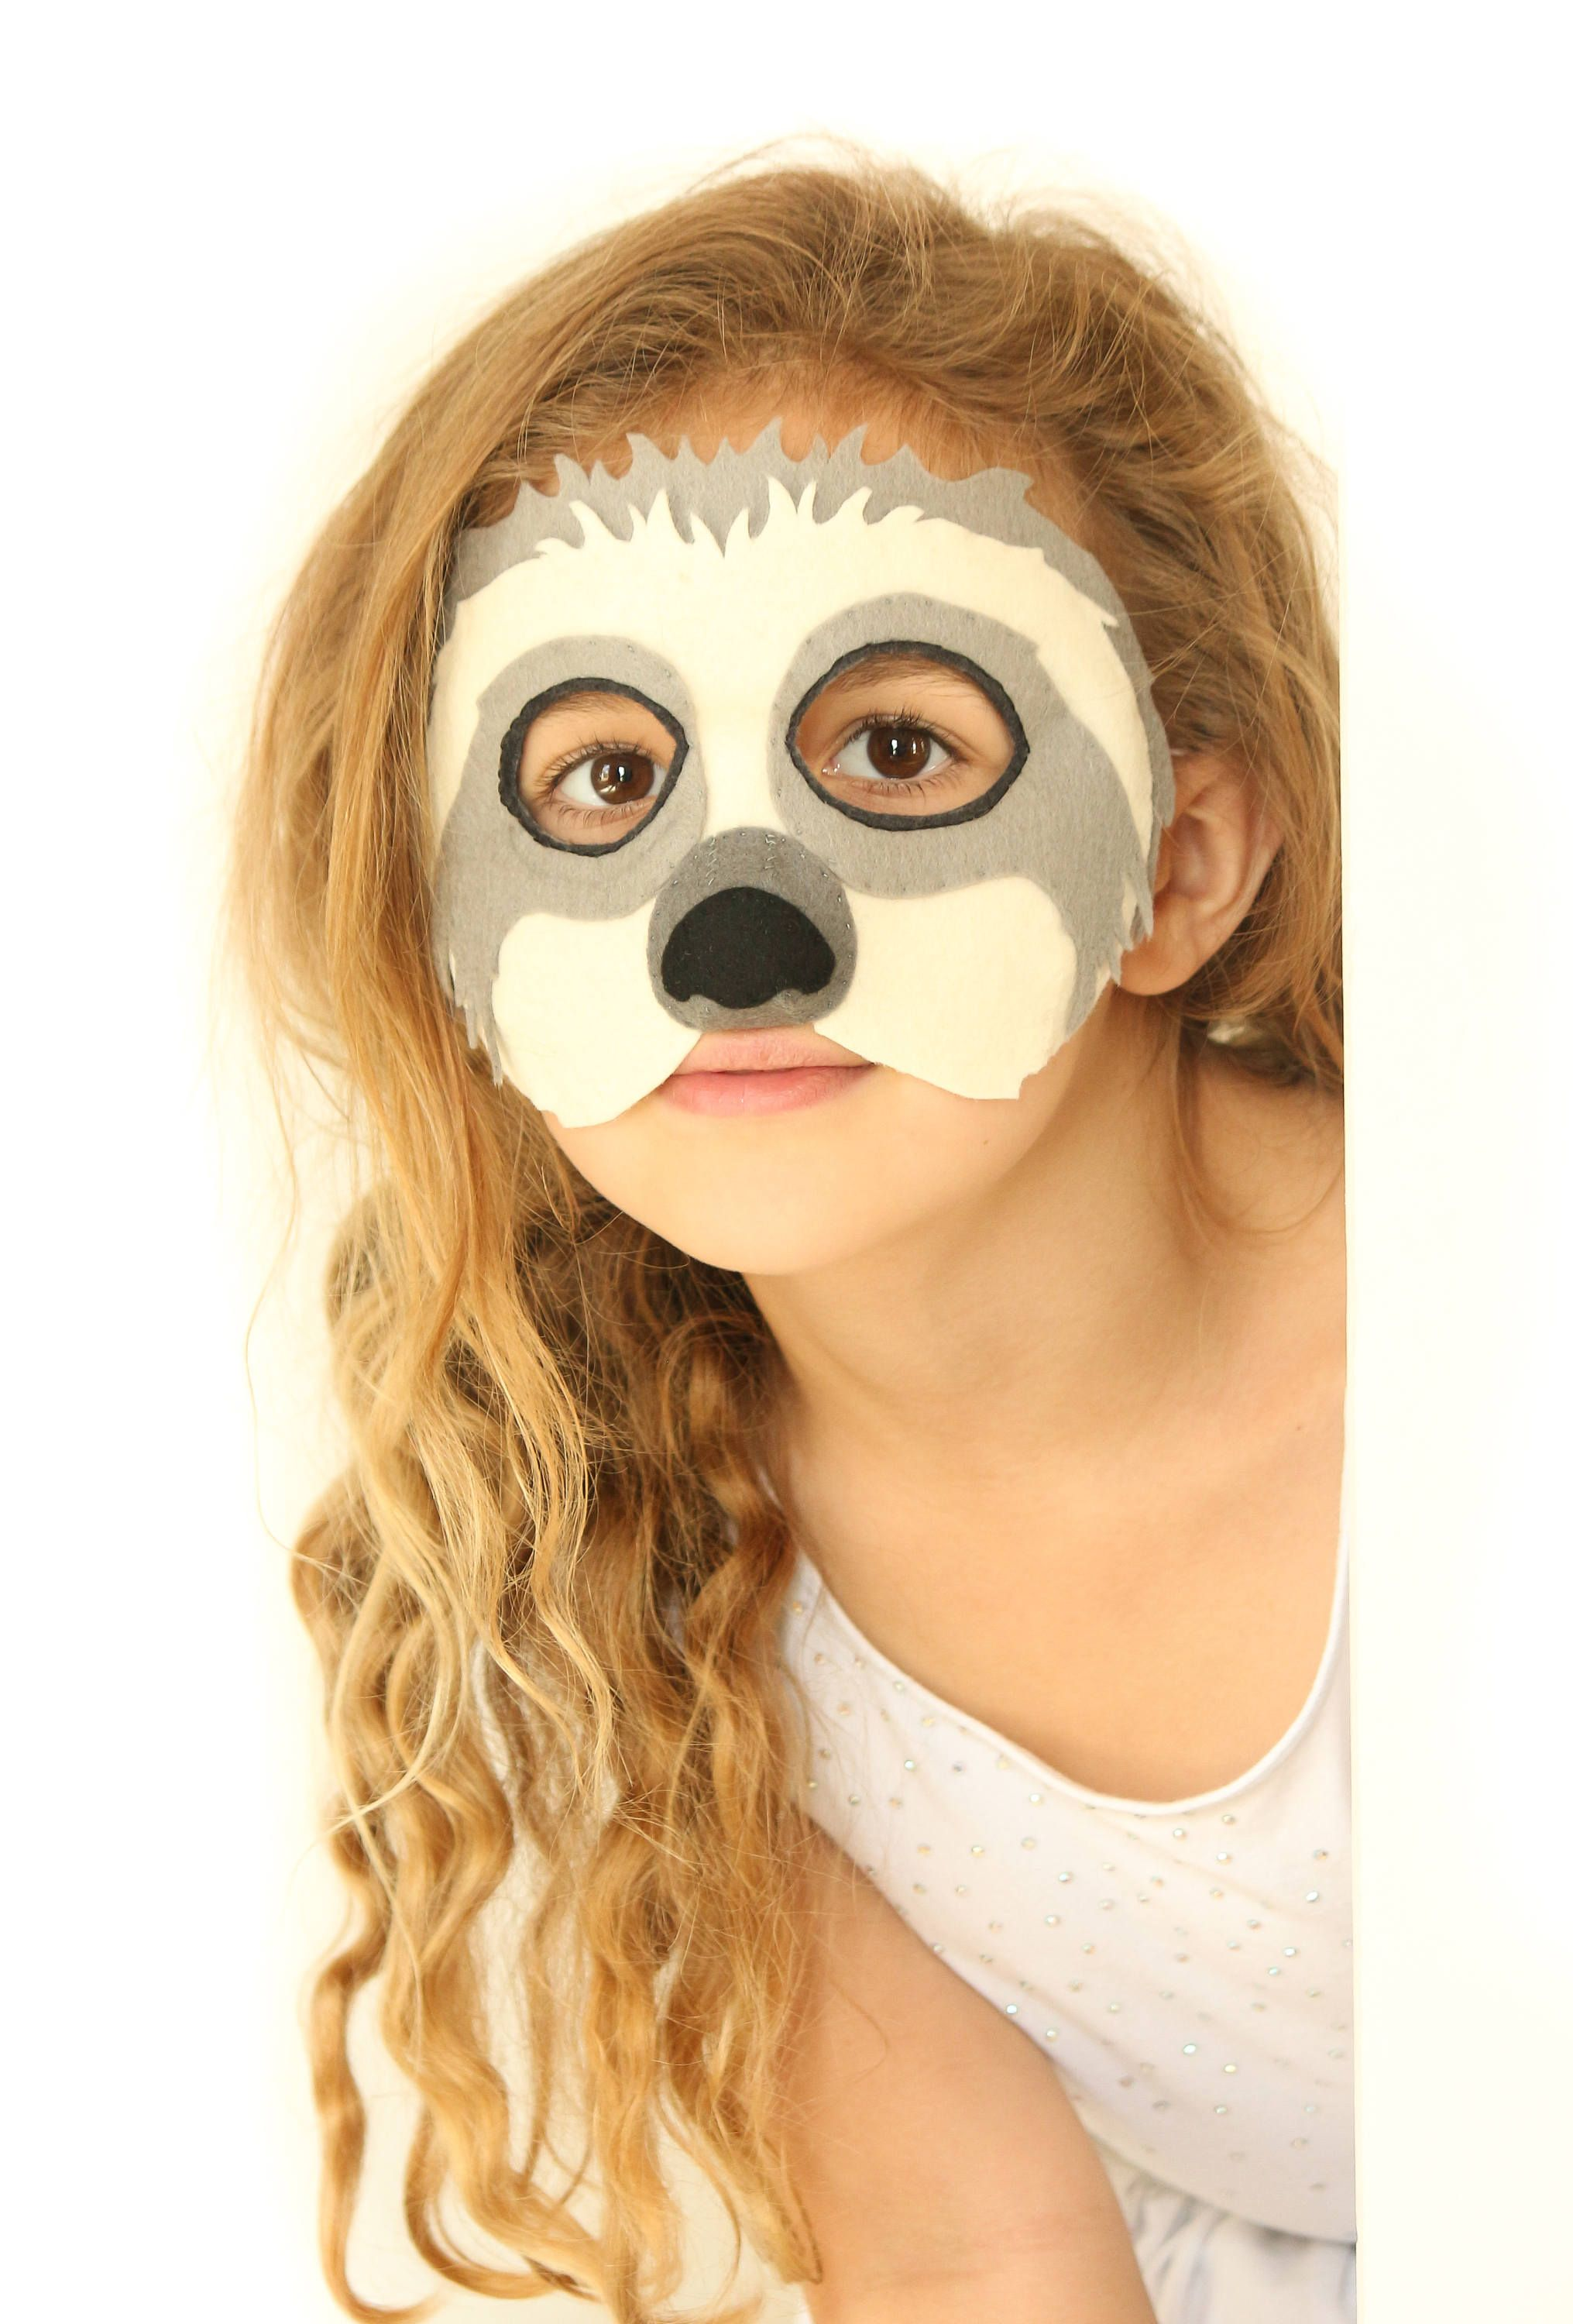 Sloth Mask Pattern. Kids sloth costume sewing pattern | Halloween ...